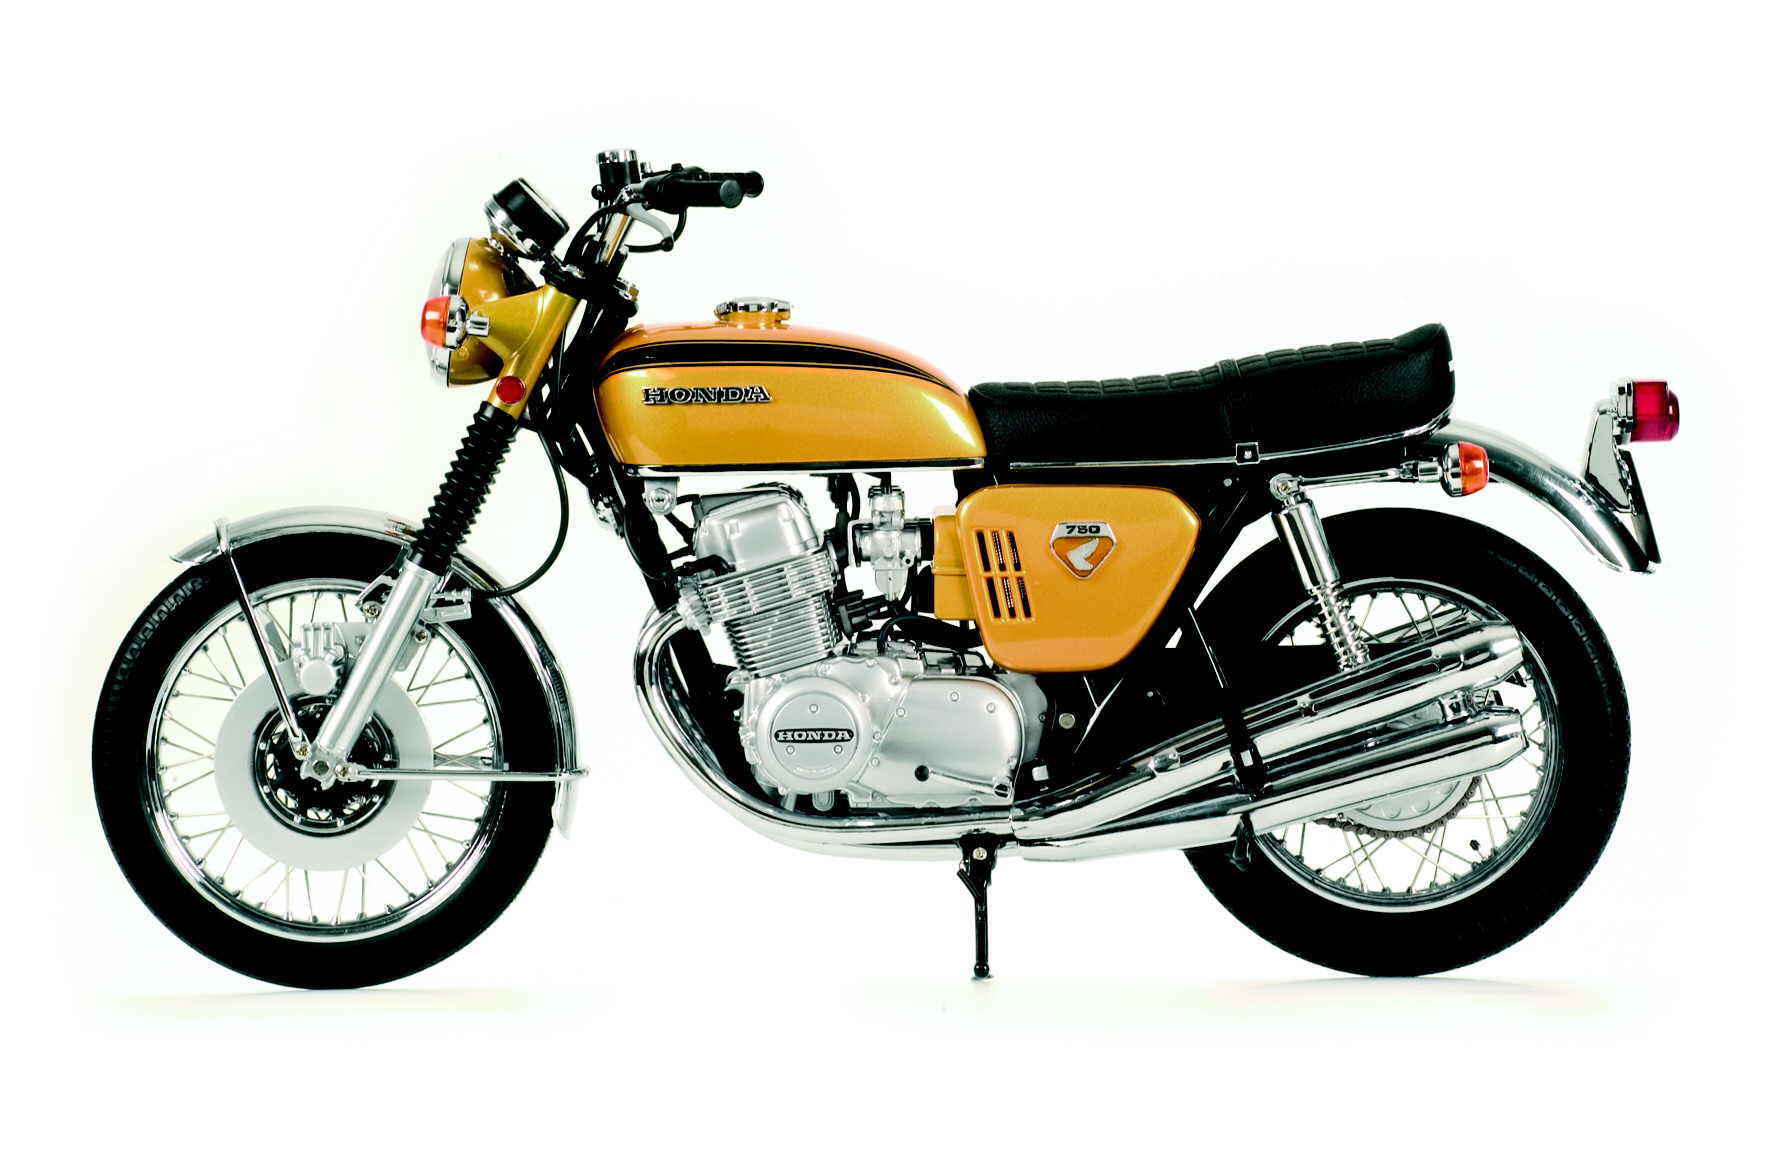 1969 - 1978 Honda CB750 | Top Speed. »